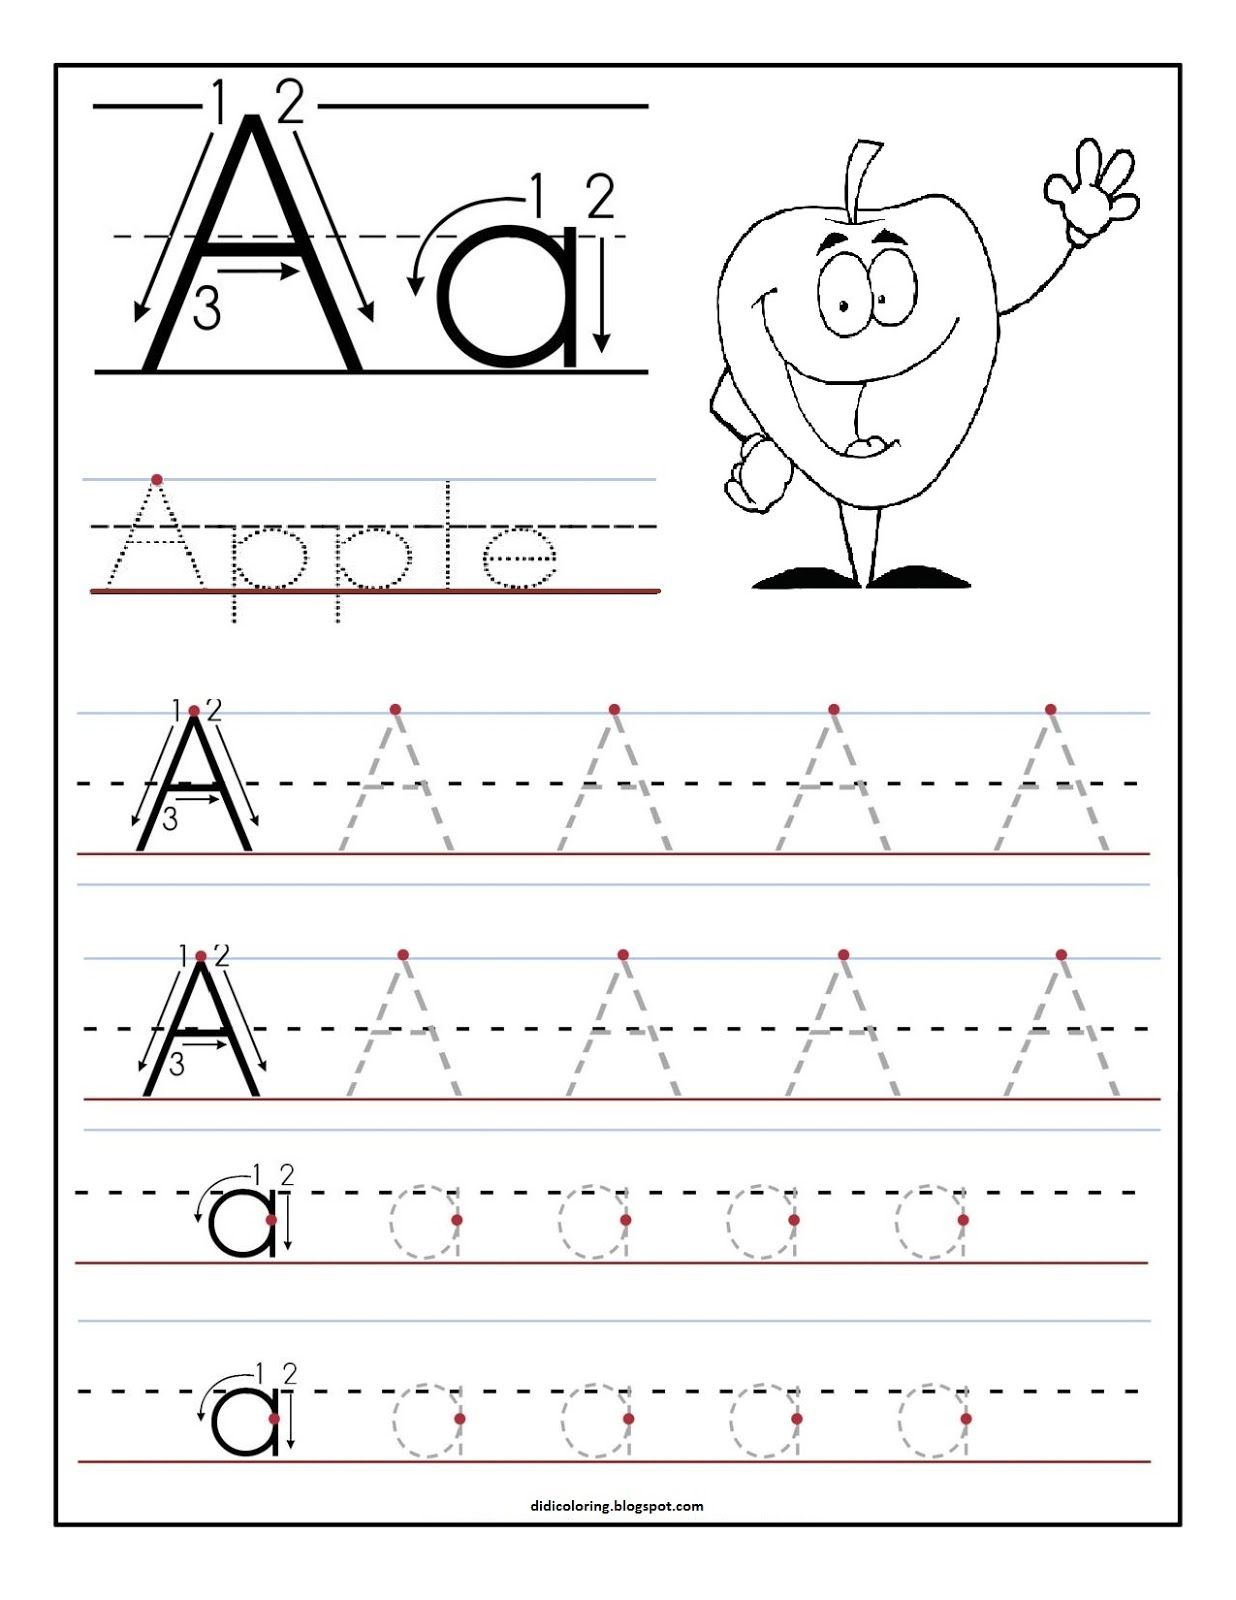 Free Preschool Writing Worksheets – With Also Addition Worksheet | Preschool Writing Worksheets Free Printable